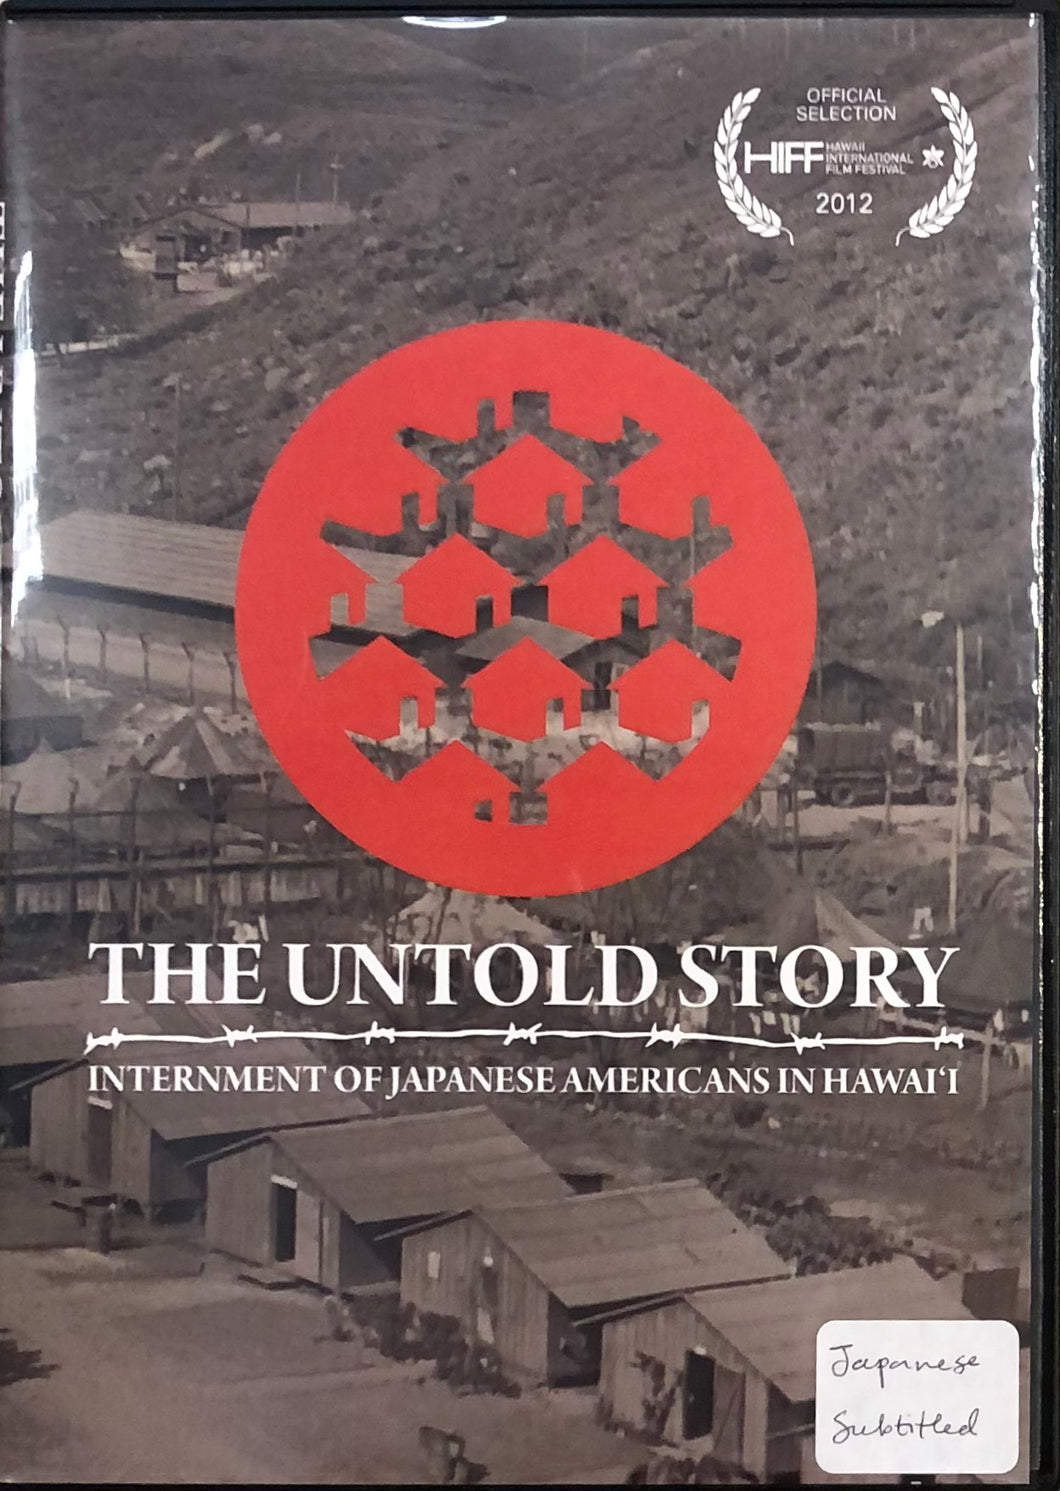 The Untold Story: Internment of Japanese Americans in Hawaiʻi